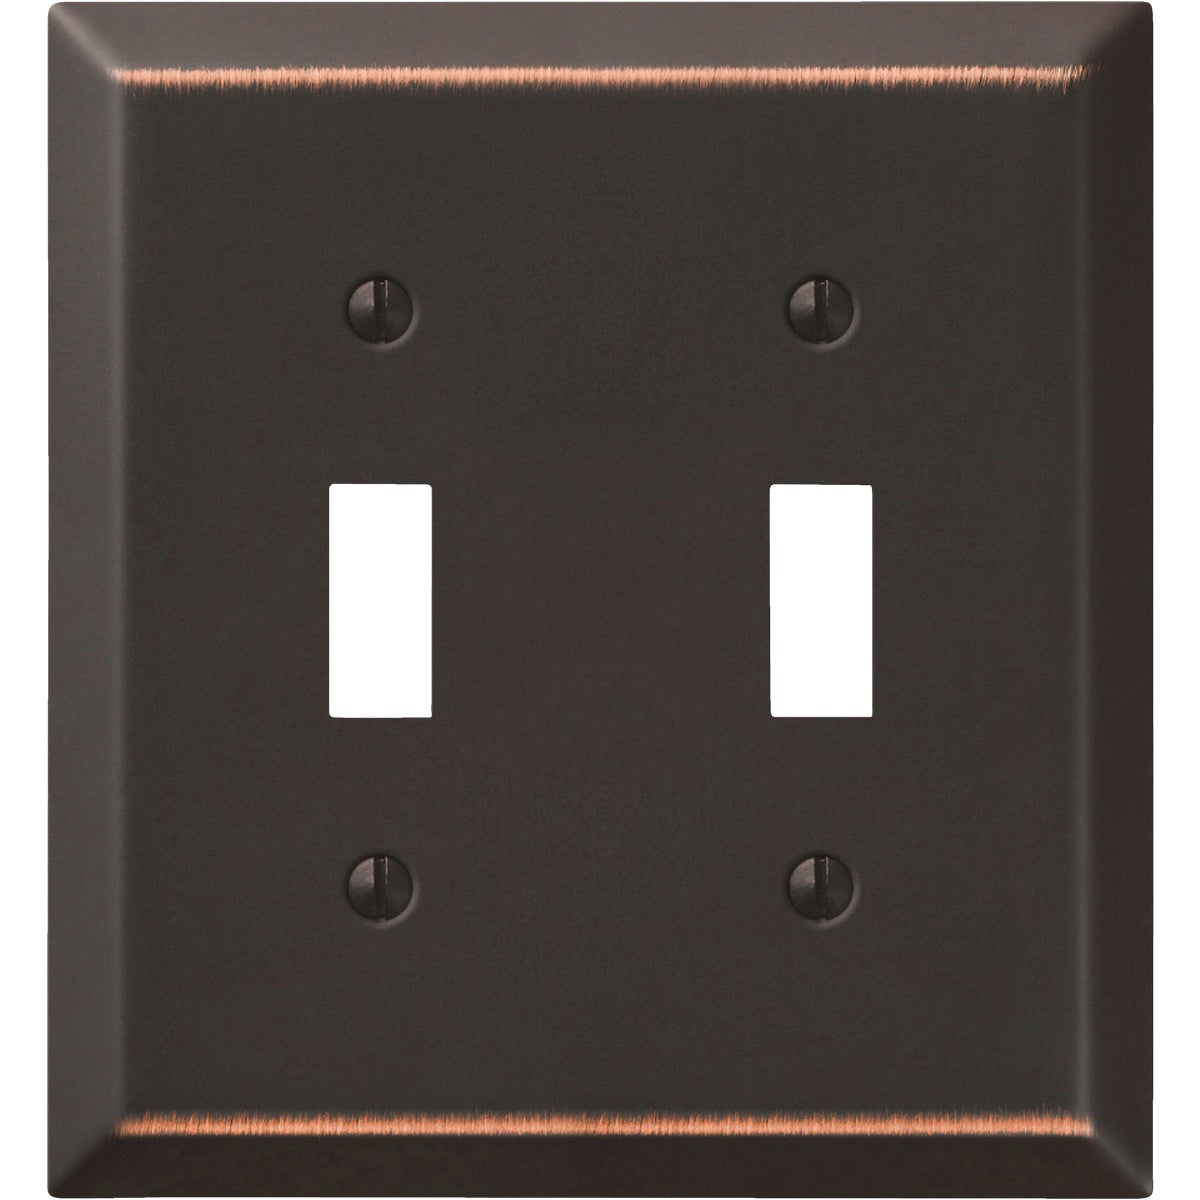 2TGL ABRZ WALLPLATE - 9AZ102 by Jackson Deerfield Mf